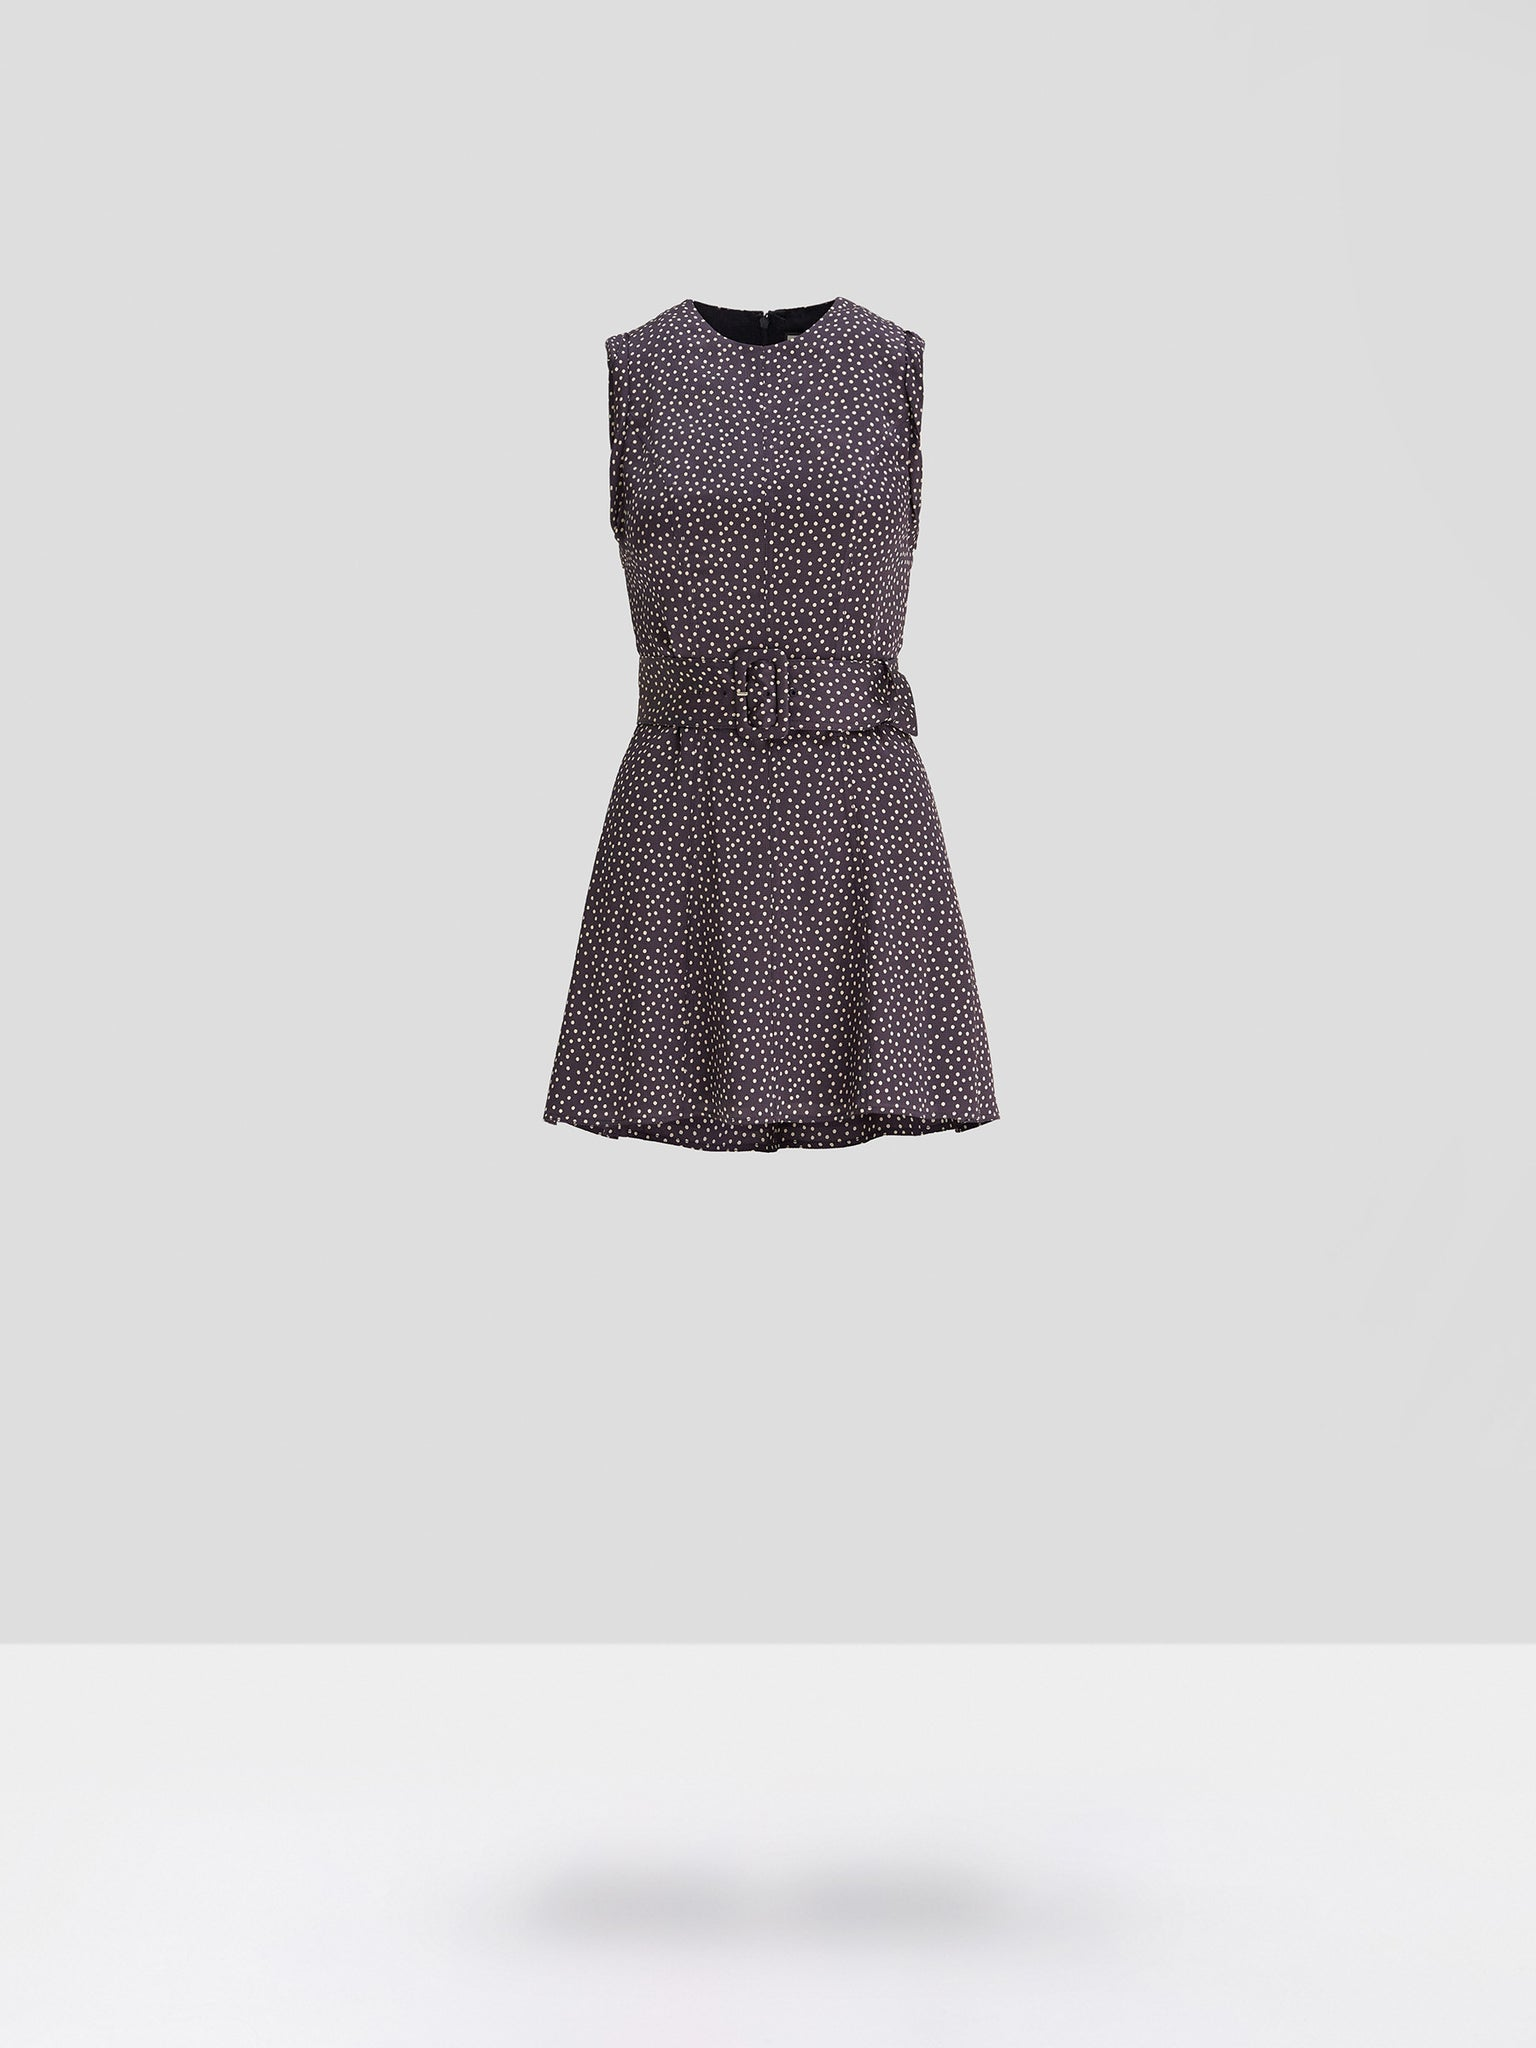 Alexis Dutsa Dress in Navy and Beige Dot